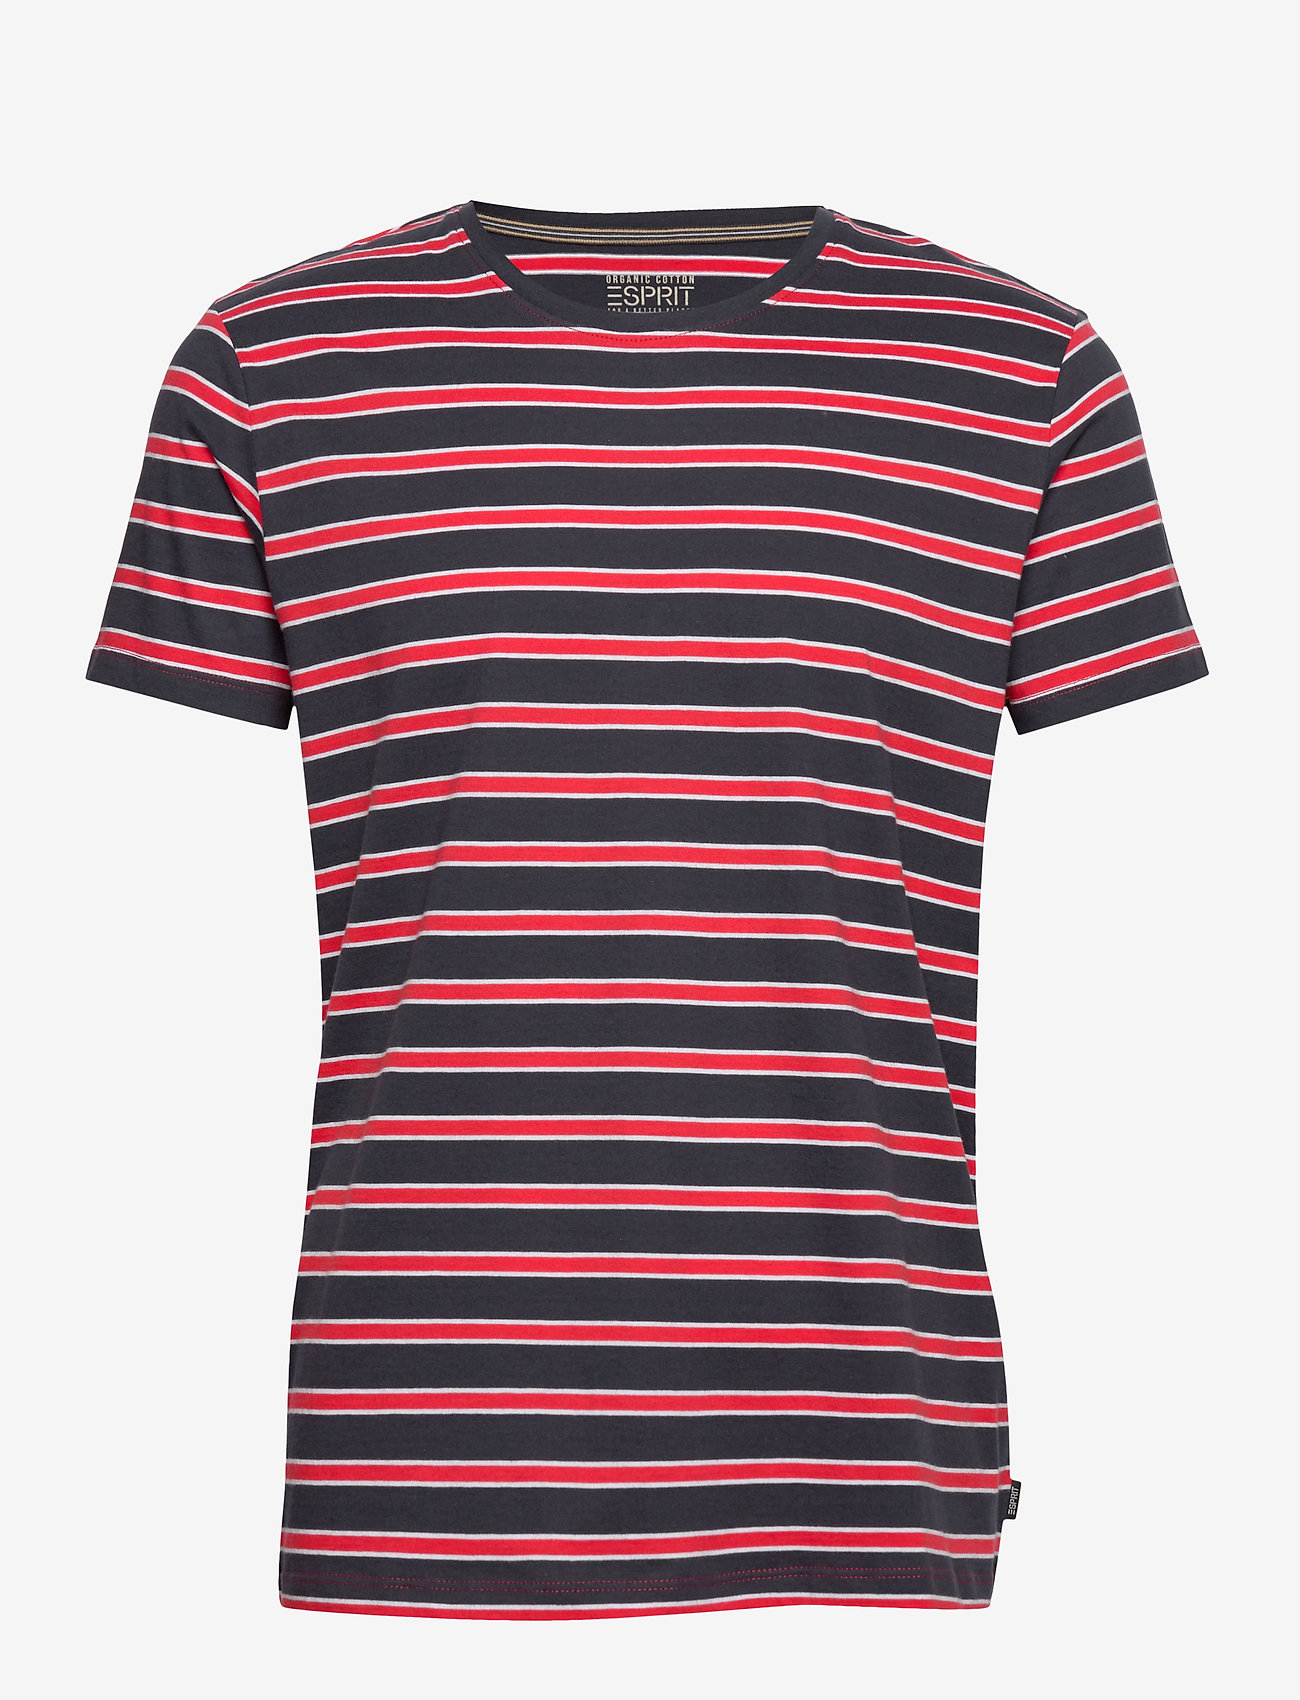 Esprit Casual - T-Shirts - short-sleeved t-shirts - red 3 - 0